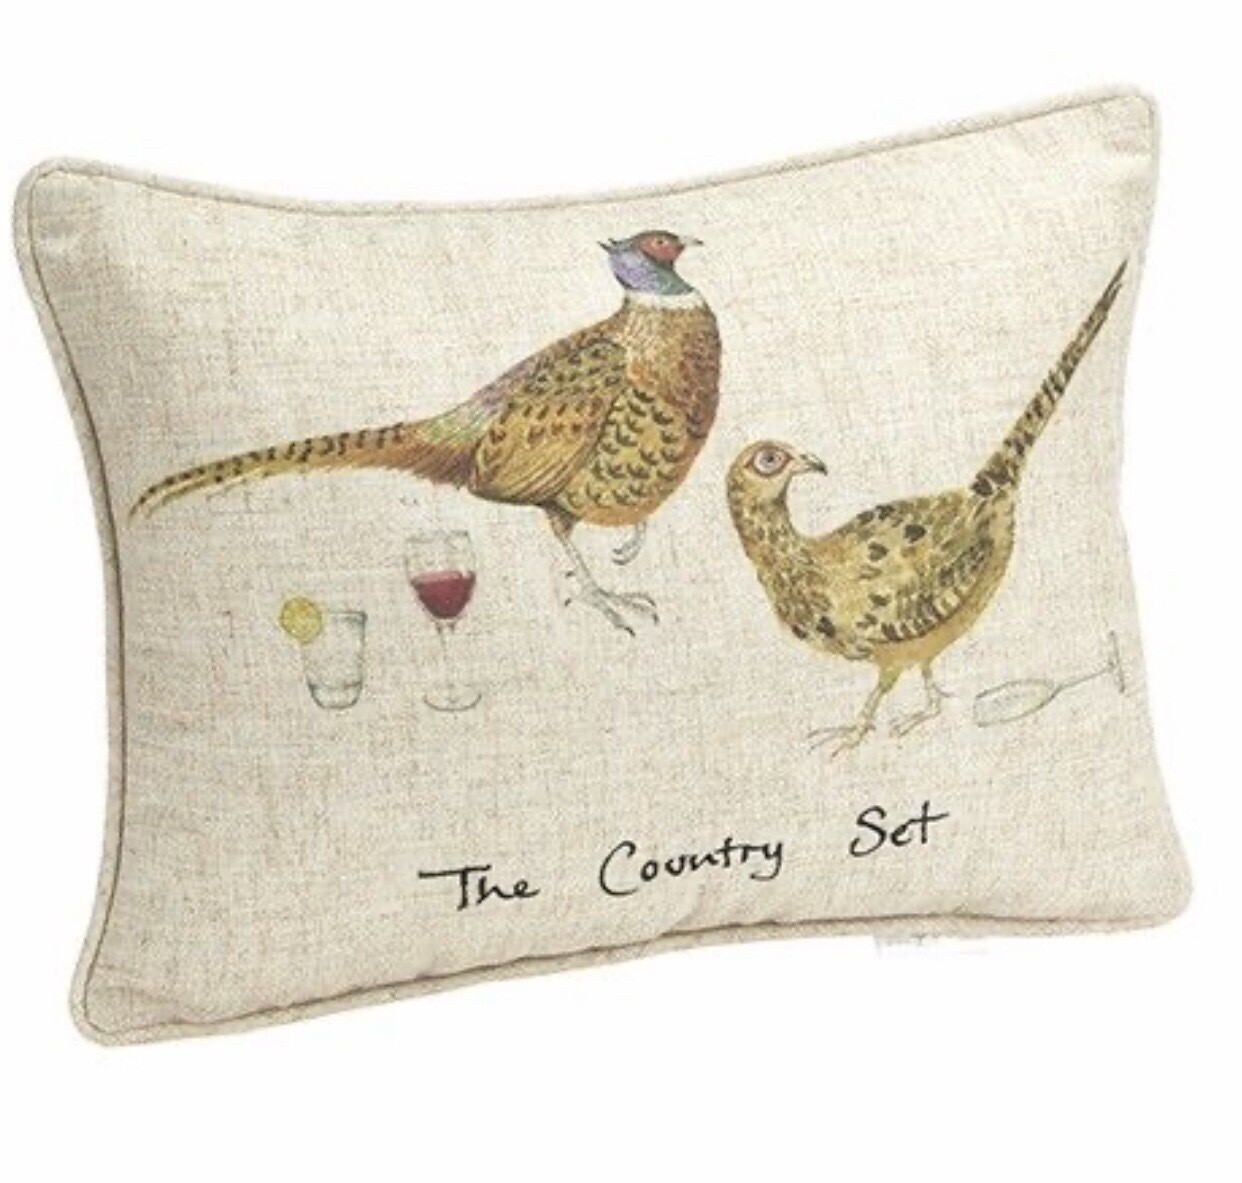 The Country Set Cushion